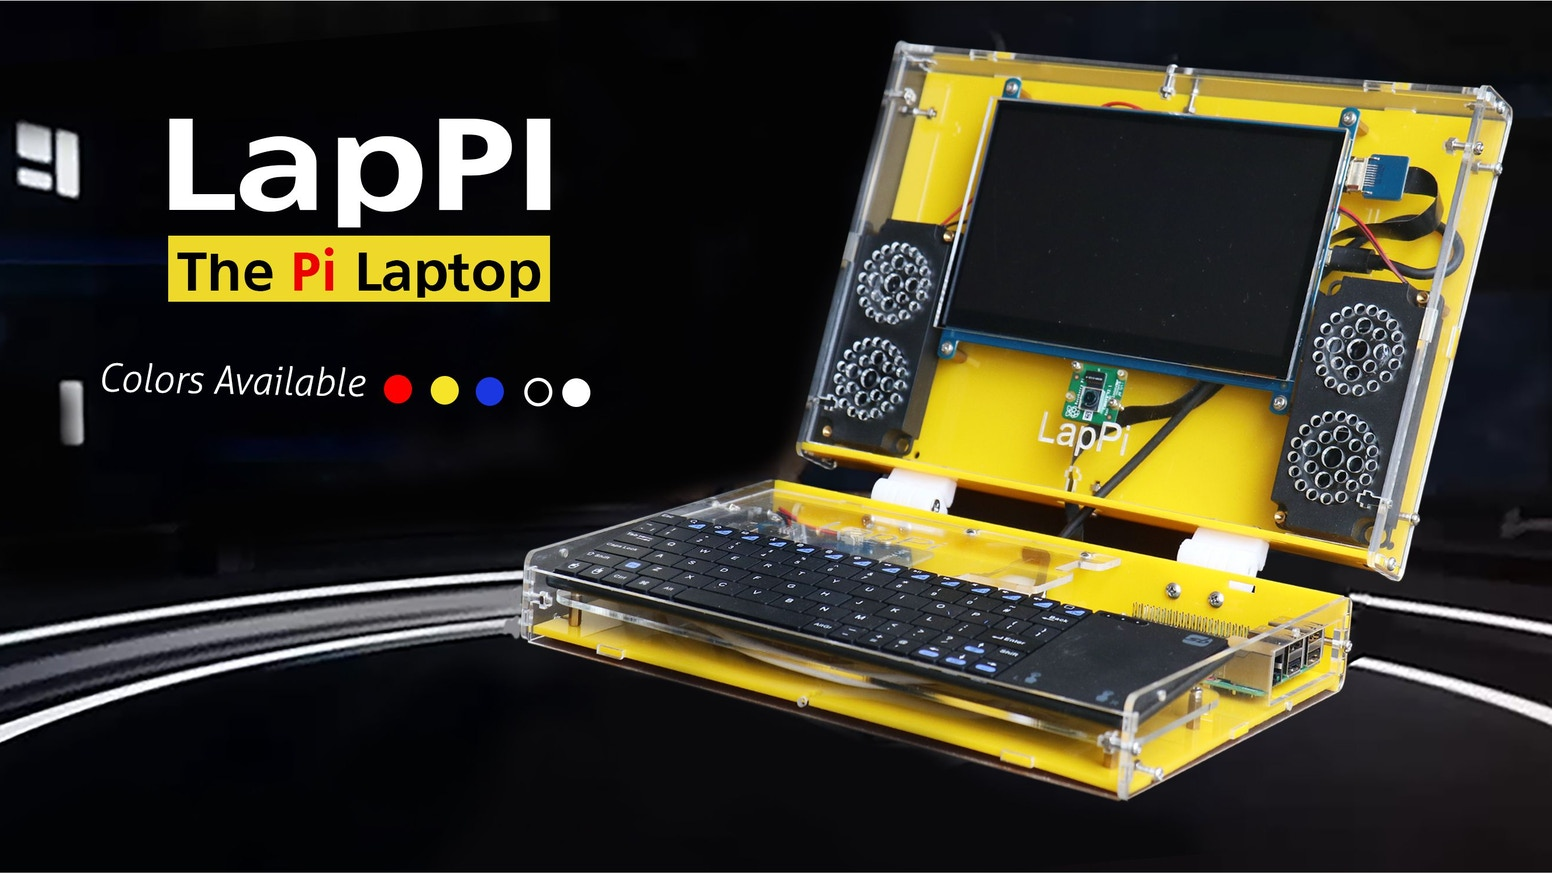 A laptop kit for everyone, all over the world. Learn code, program apps, and create the future.